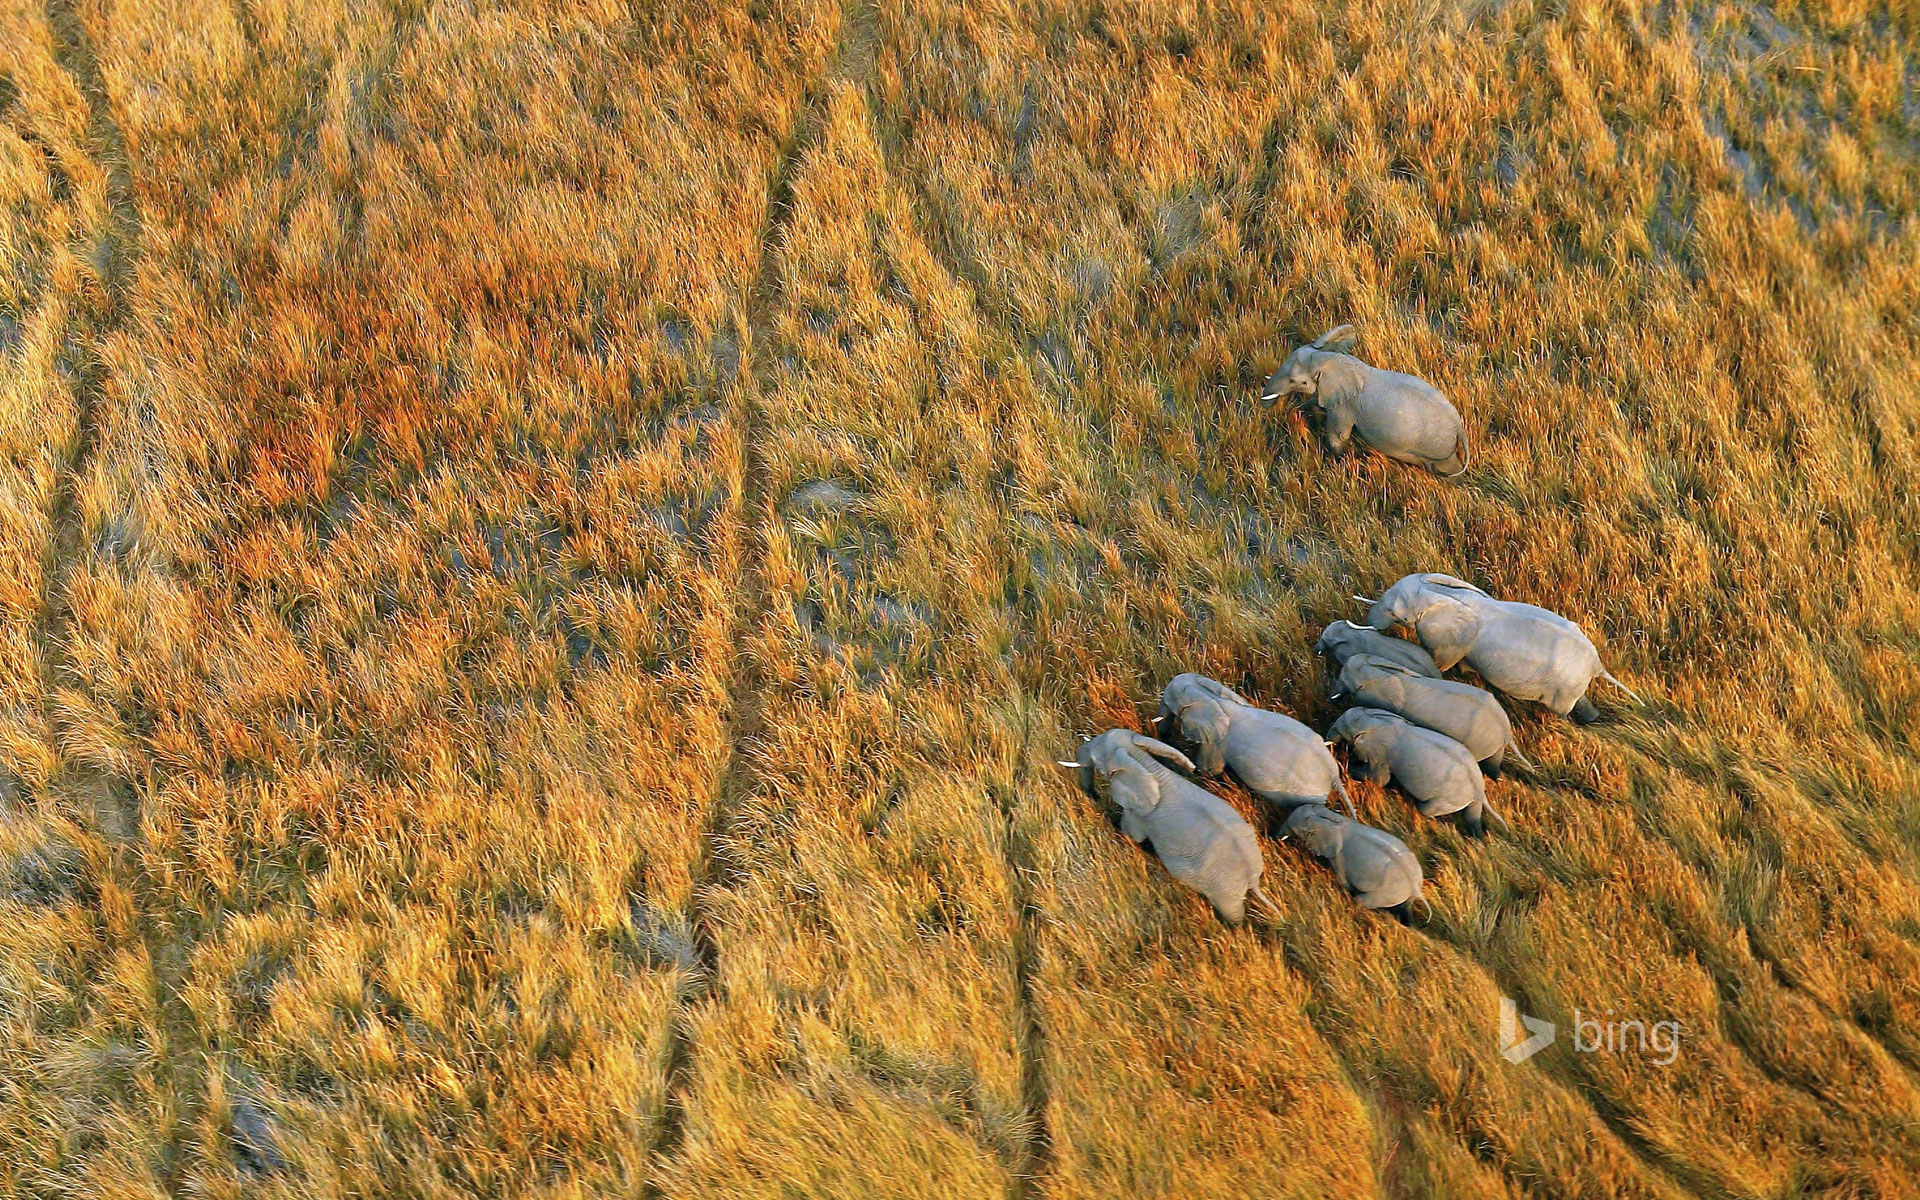 Elephants in the Okavango Delta, Botswana HD Wallpaper ...